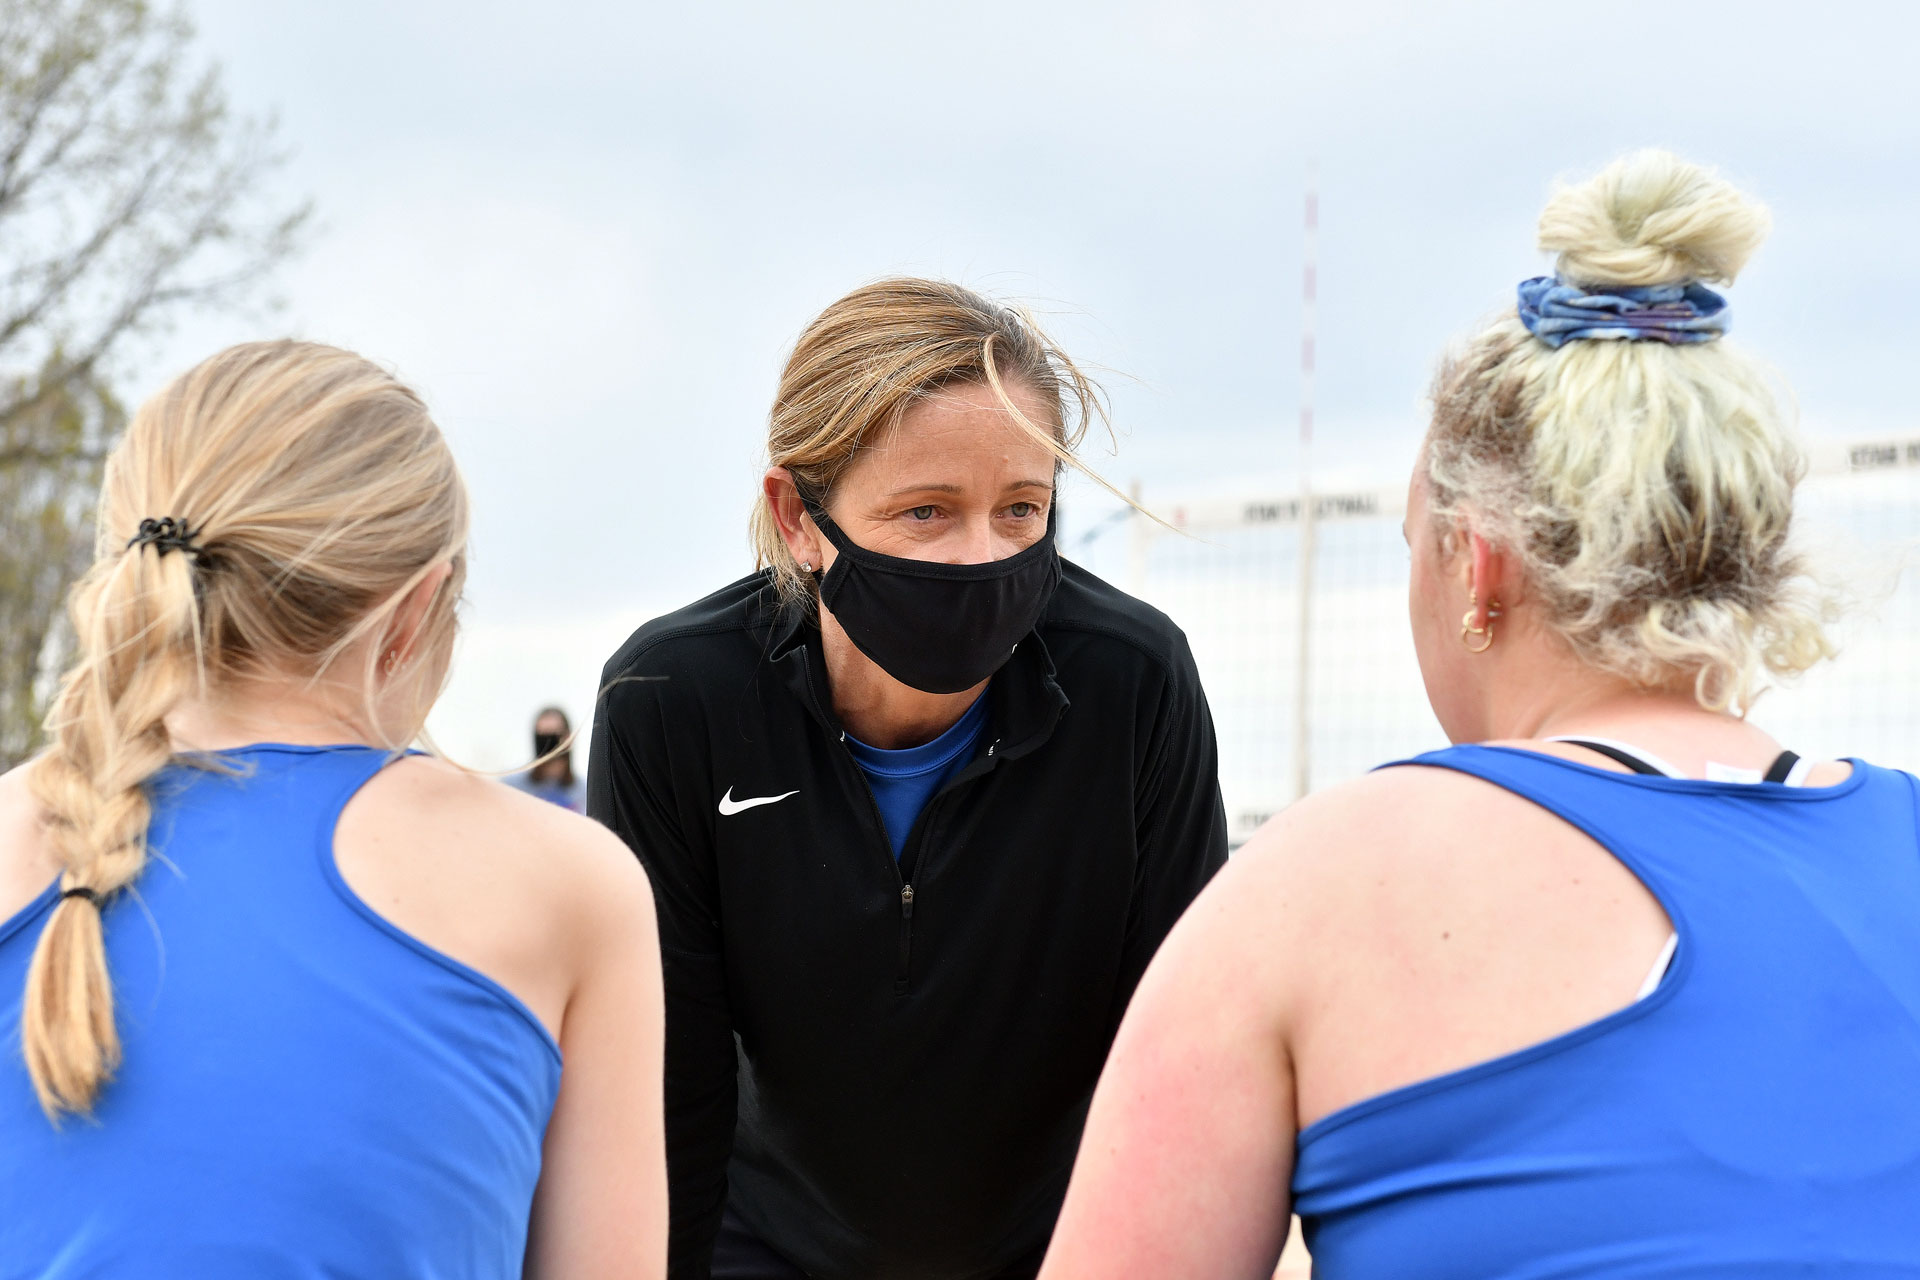 Shay Goulding-Meurer coaches two beach volleyball players